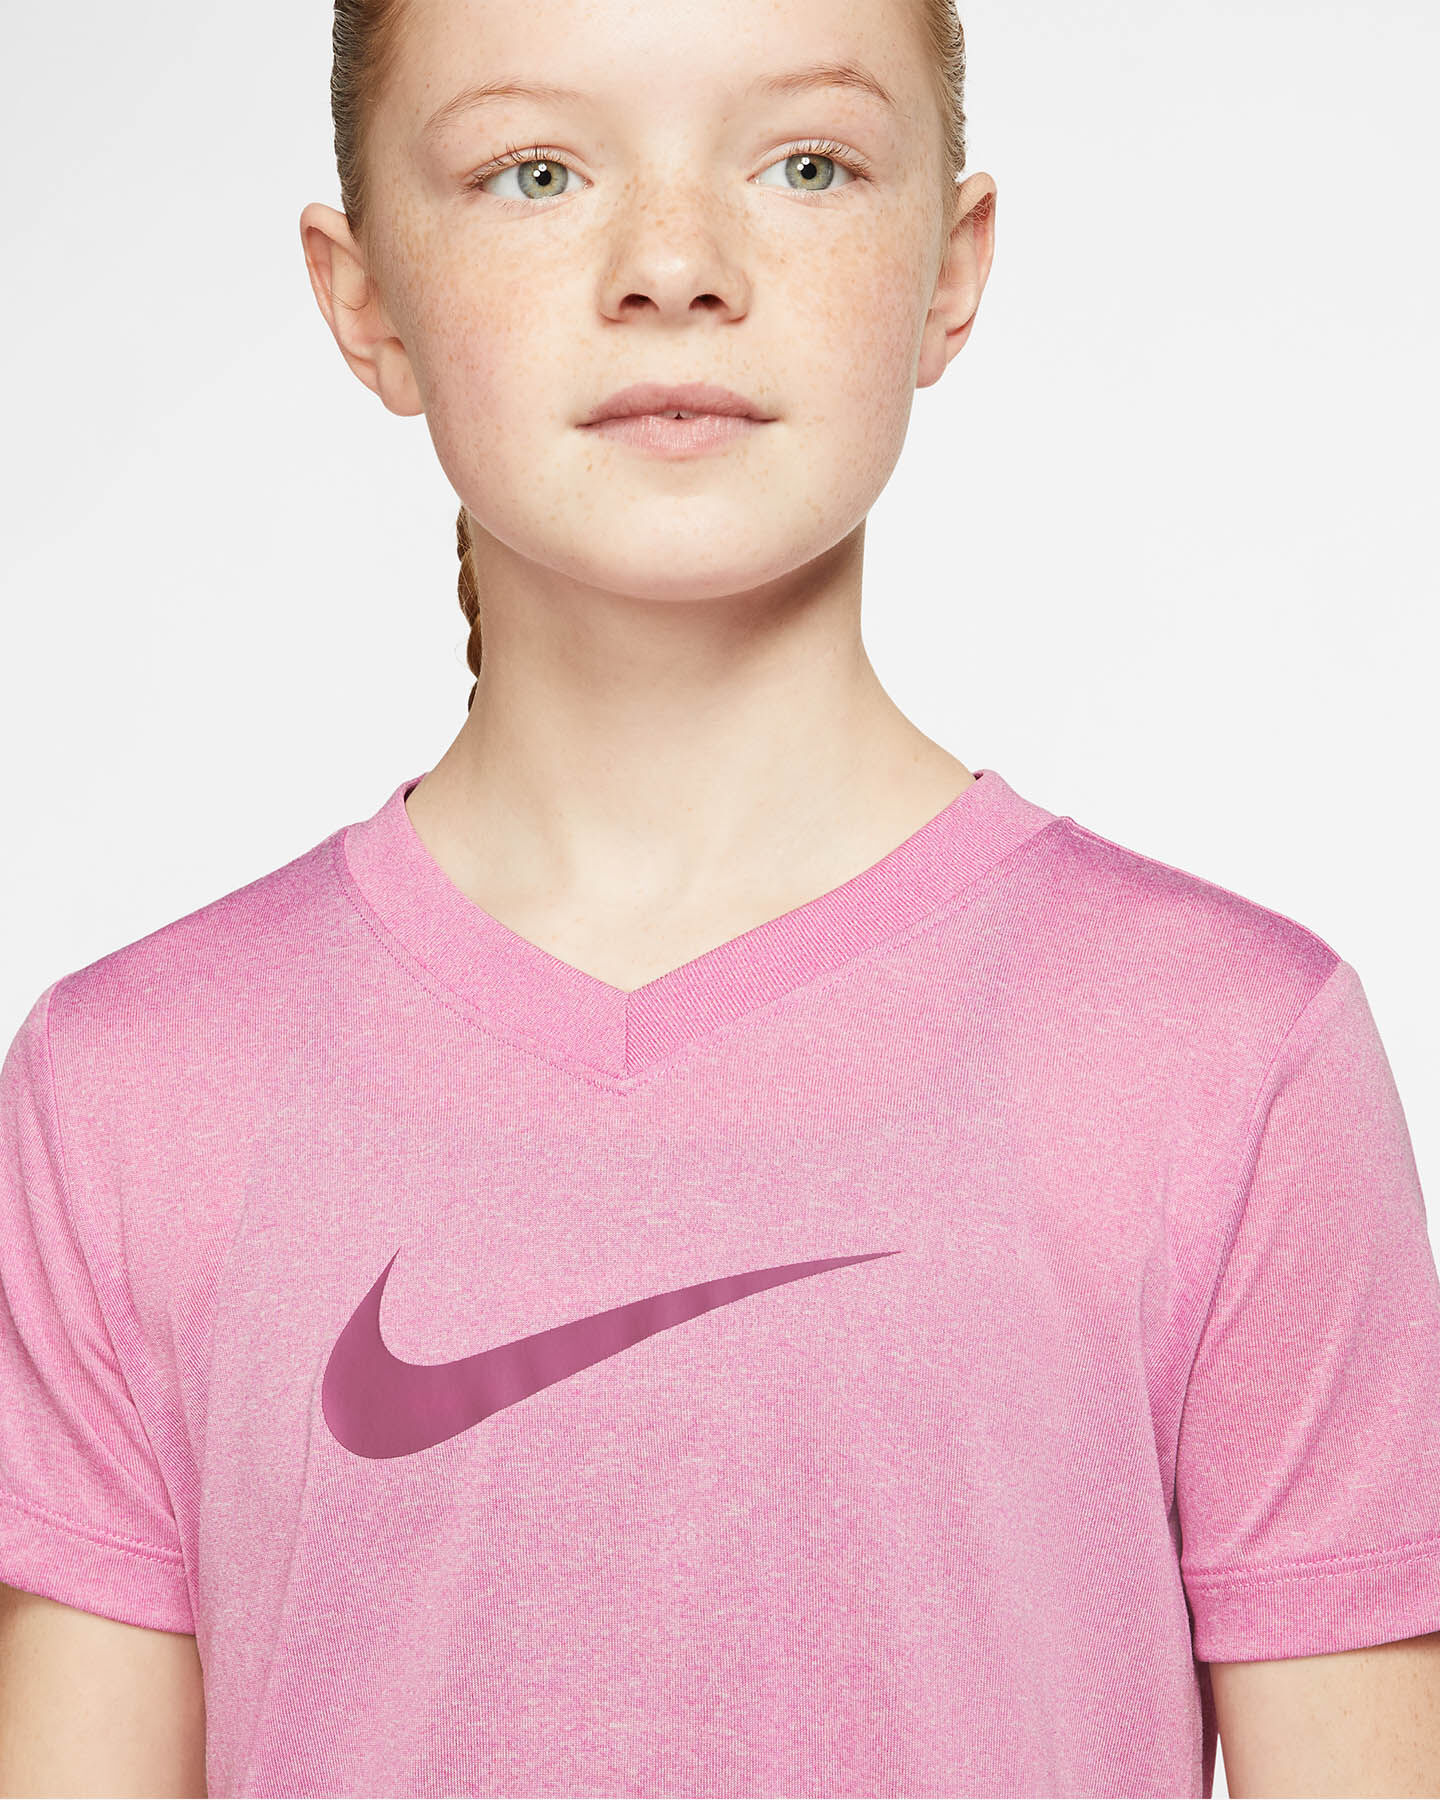 T-Shirt NIKE DRI-FIT JR S5162697 scatto 4